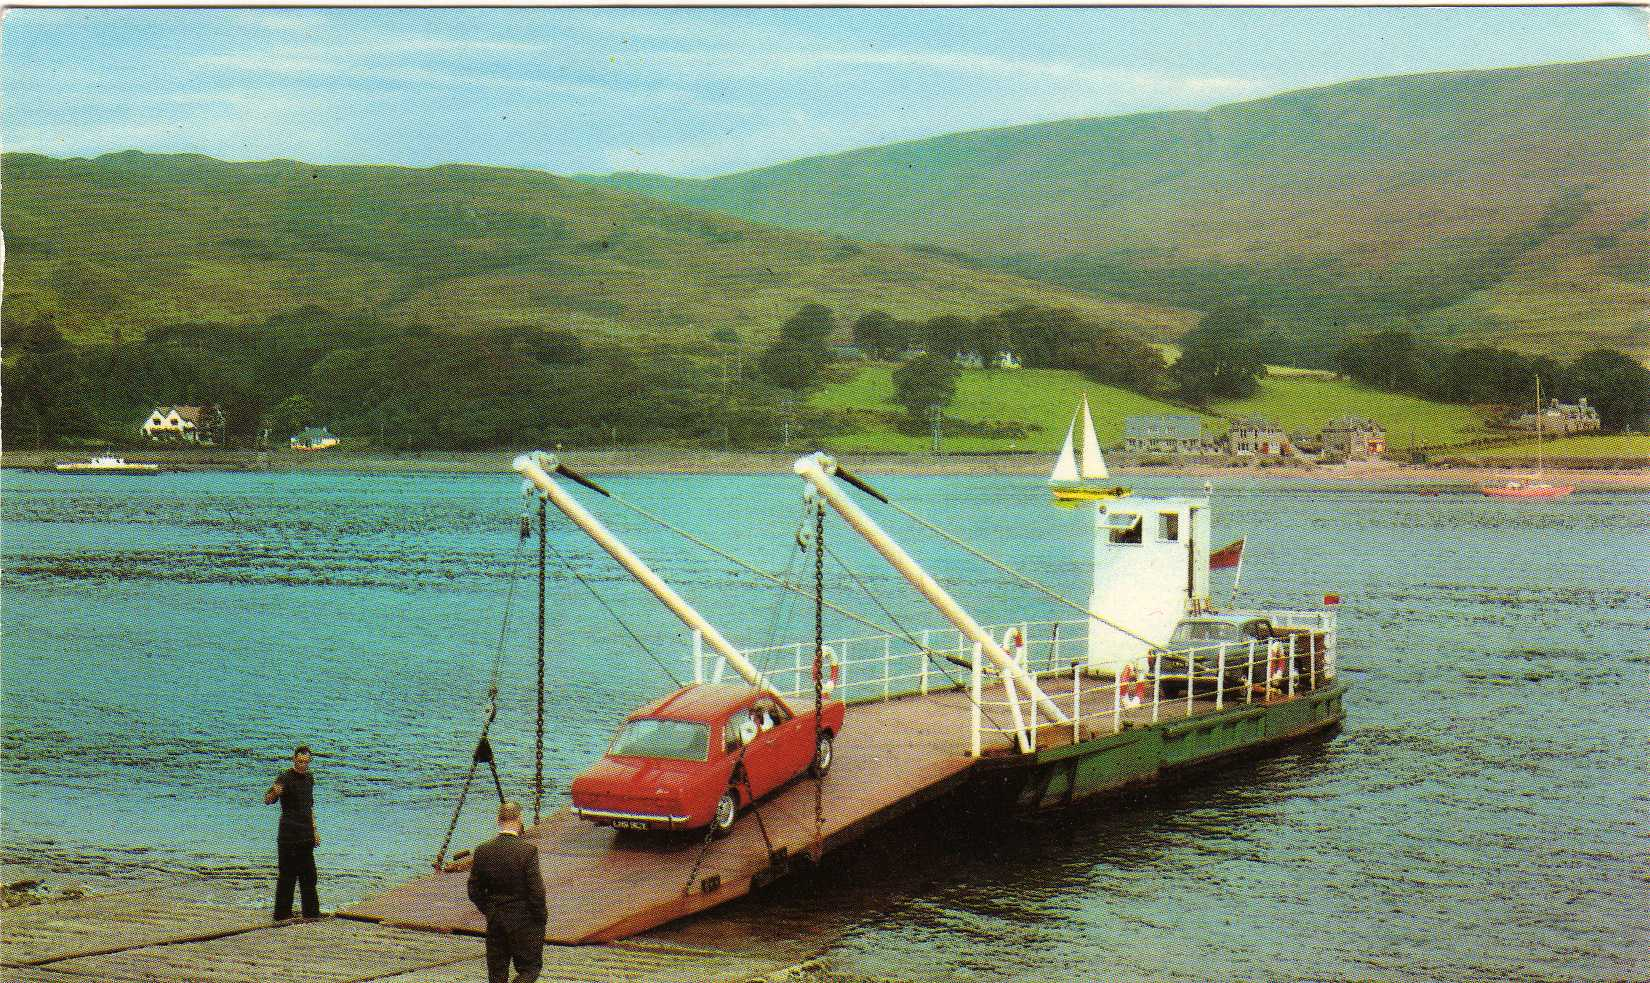 In service at Bute